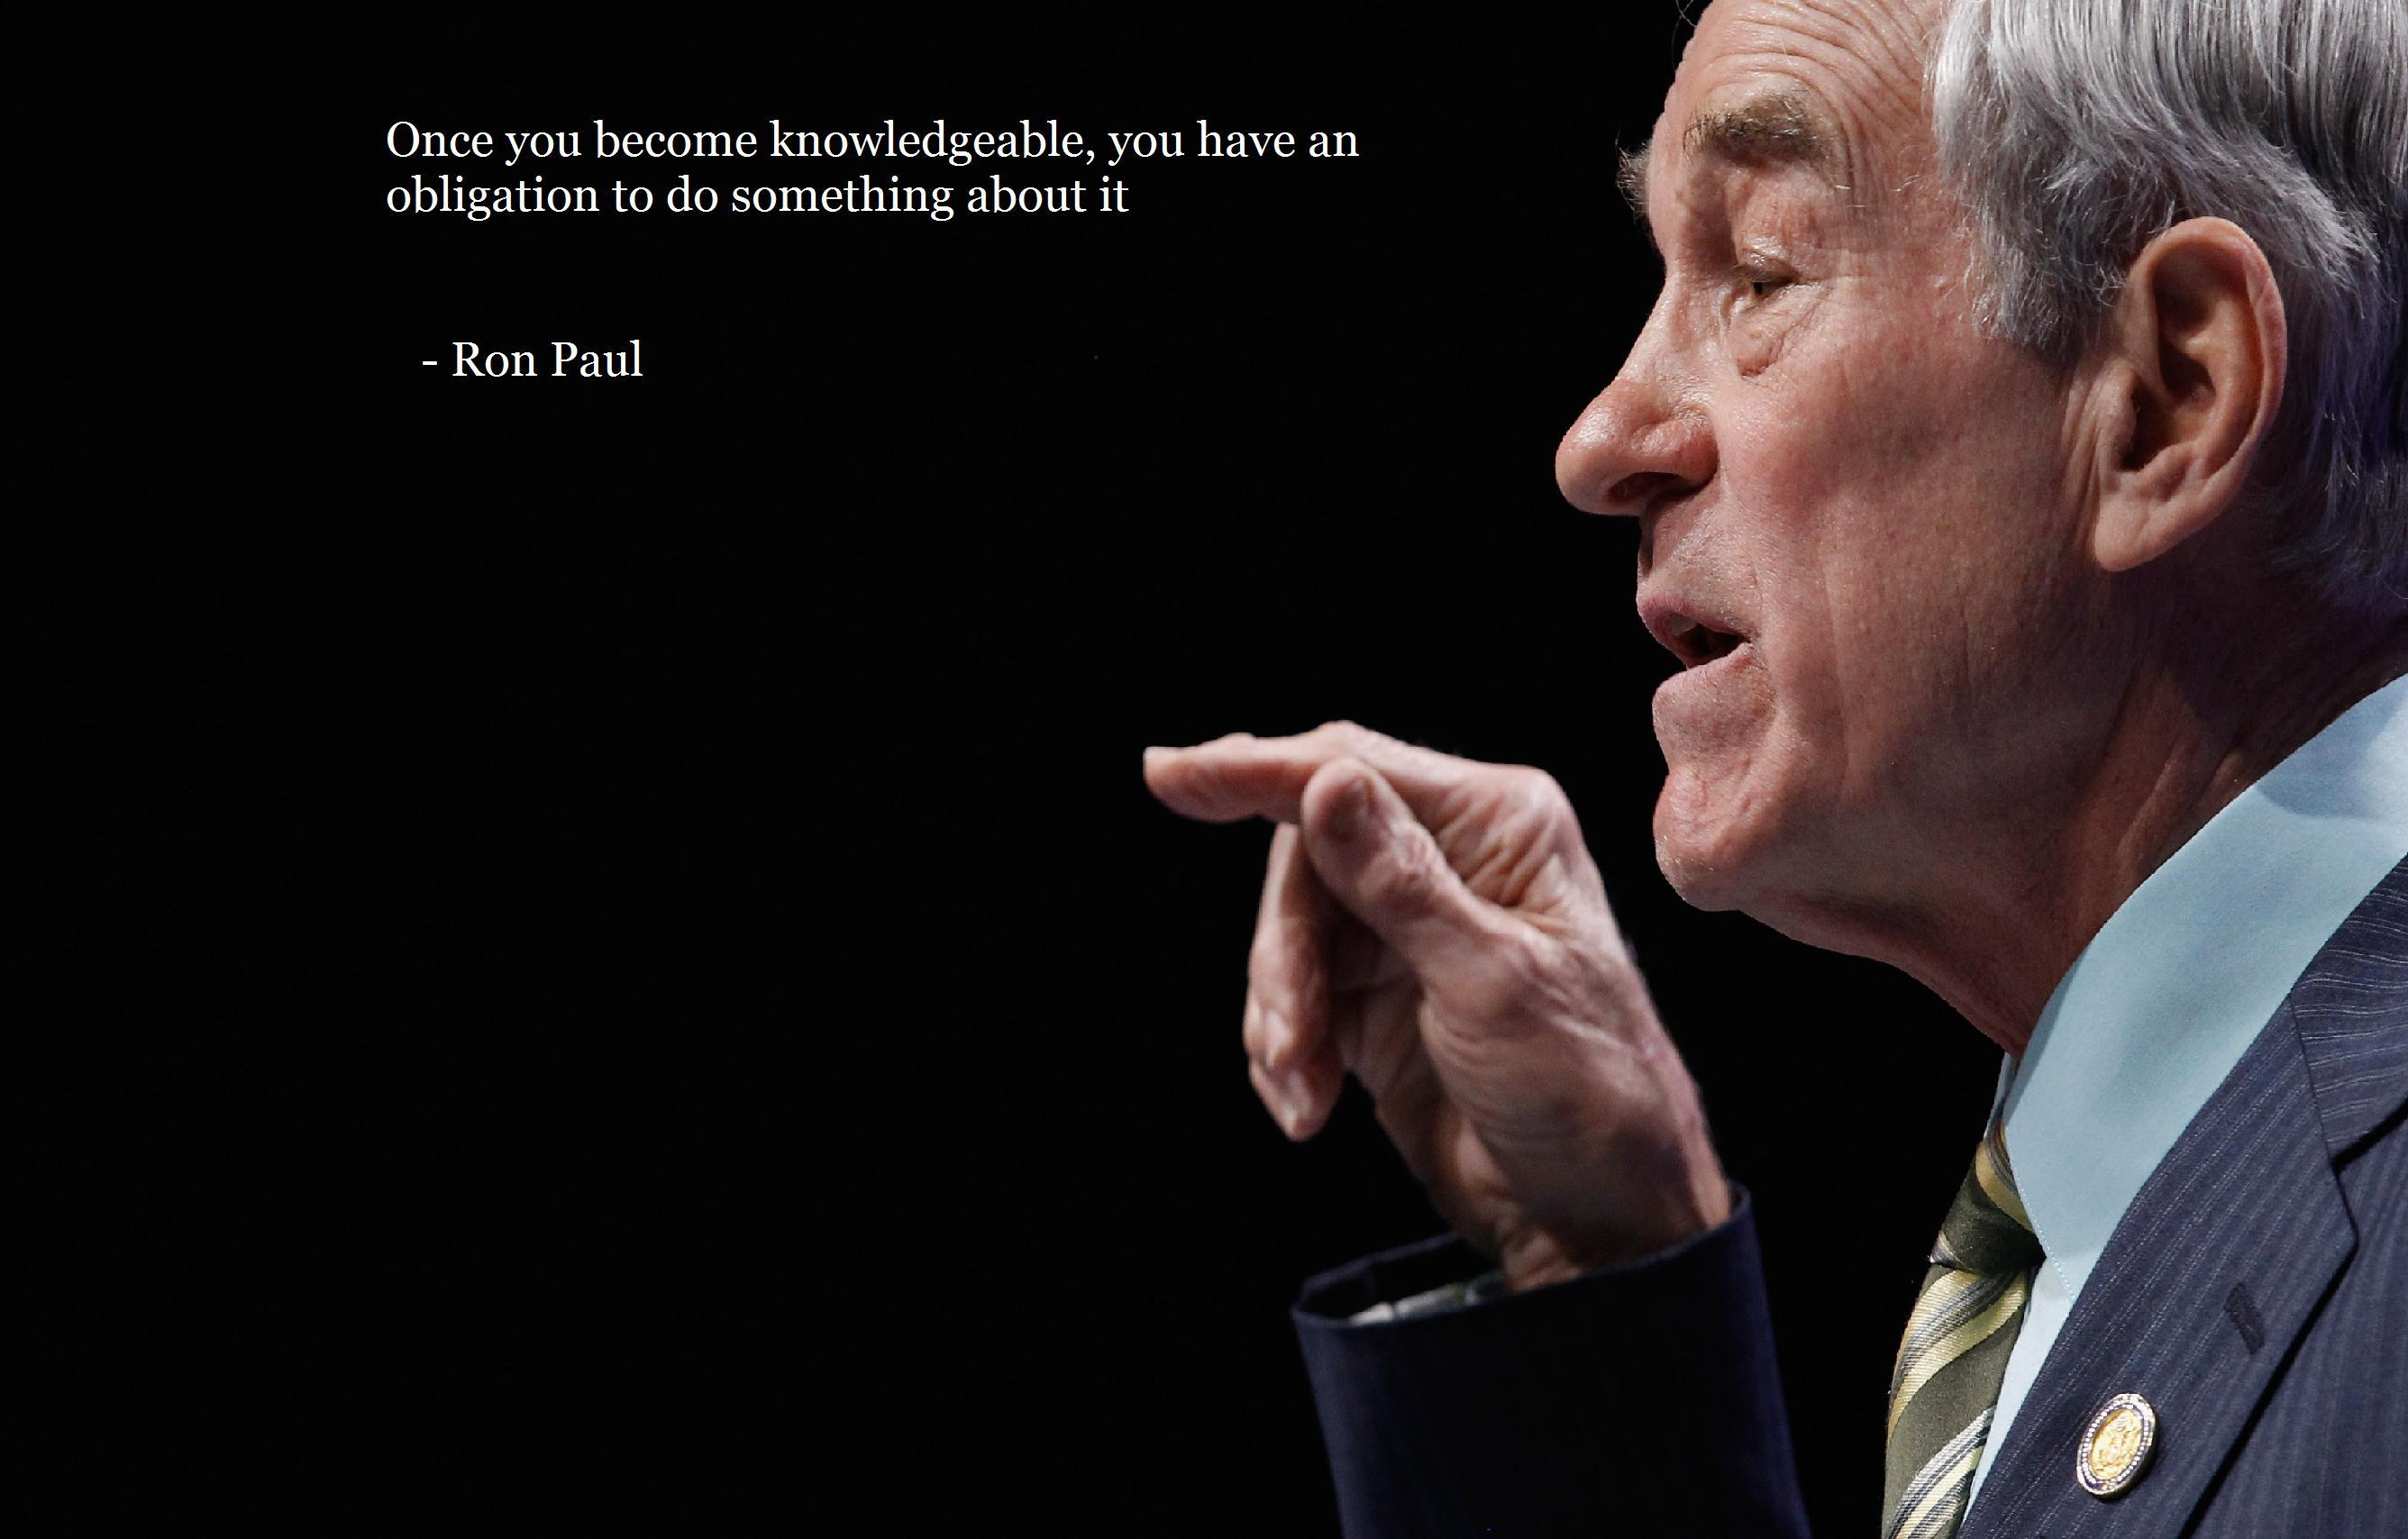 Ron Paul's quote #5